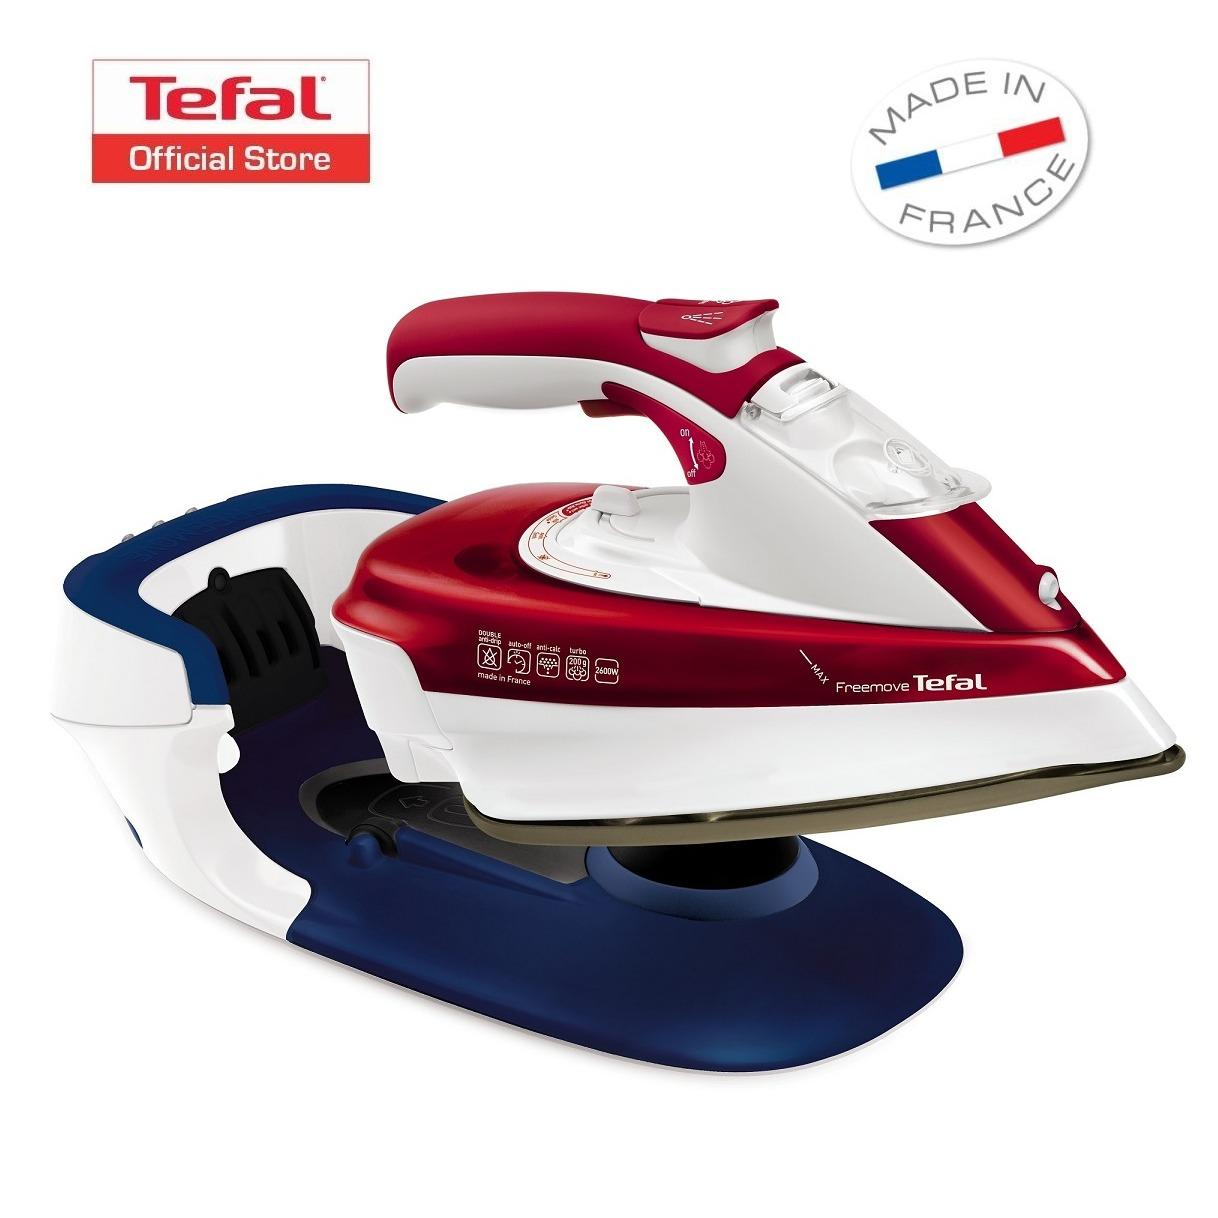 Who Sells Tefal Freemove Cordless Steam Iron Fv9976 The Cheapest